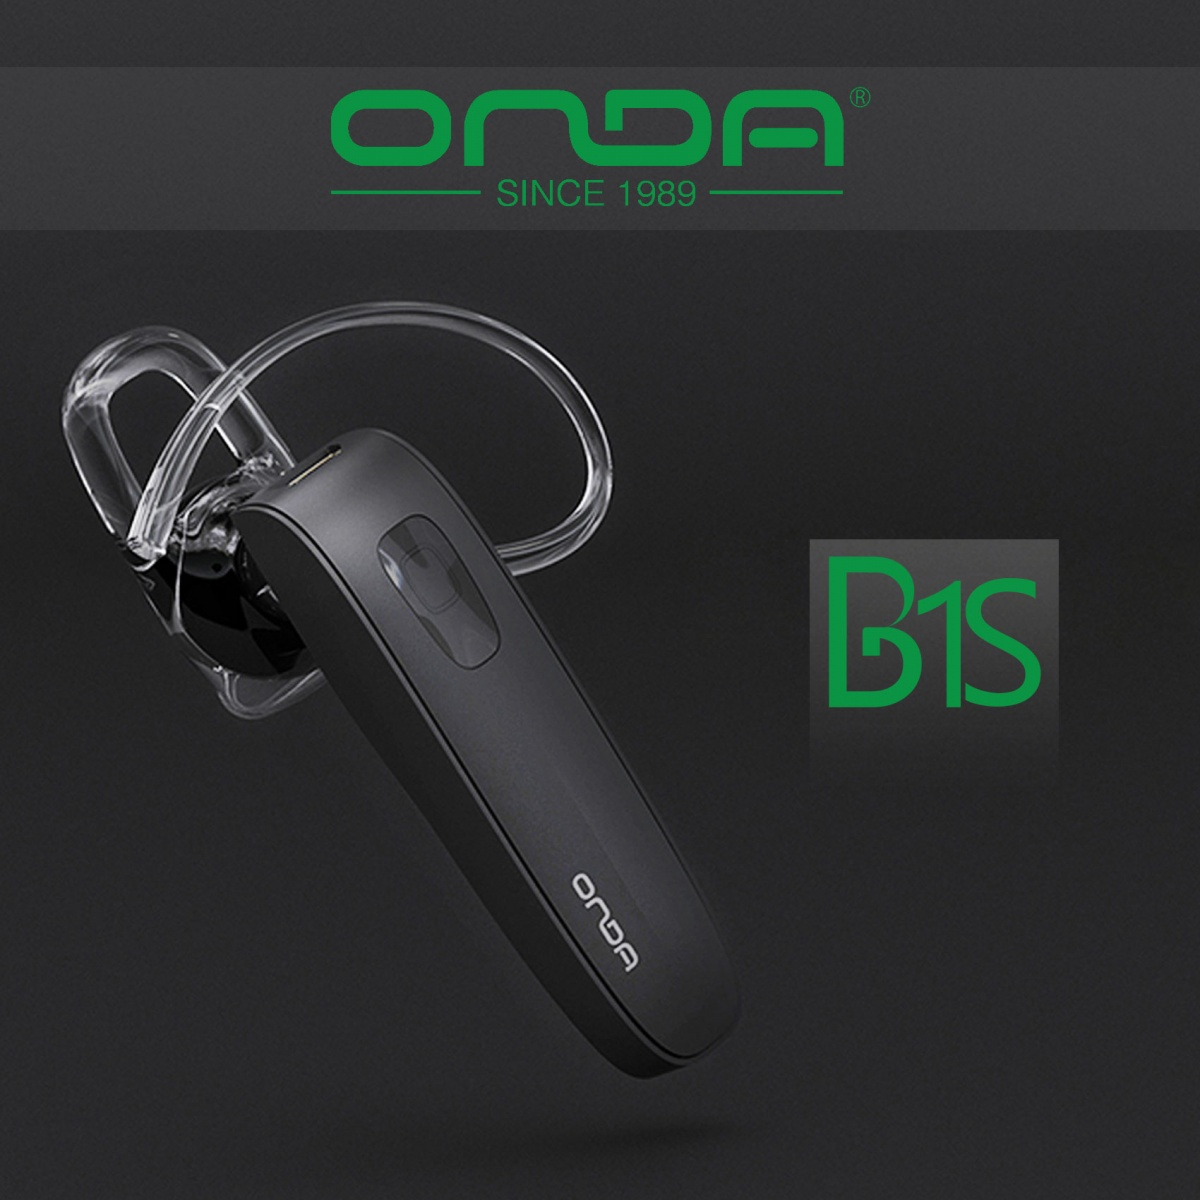 Onda B1S Bluetooth Headset - Black